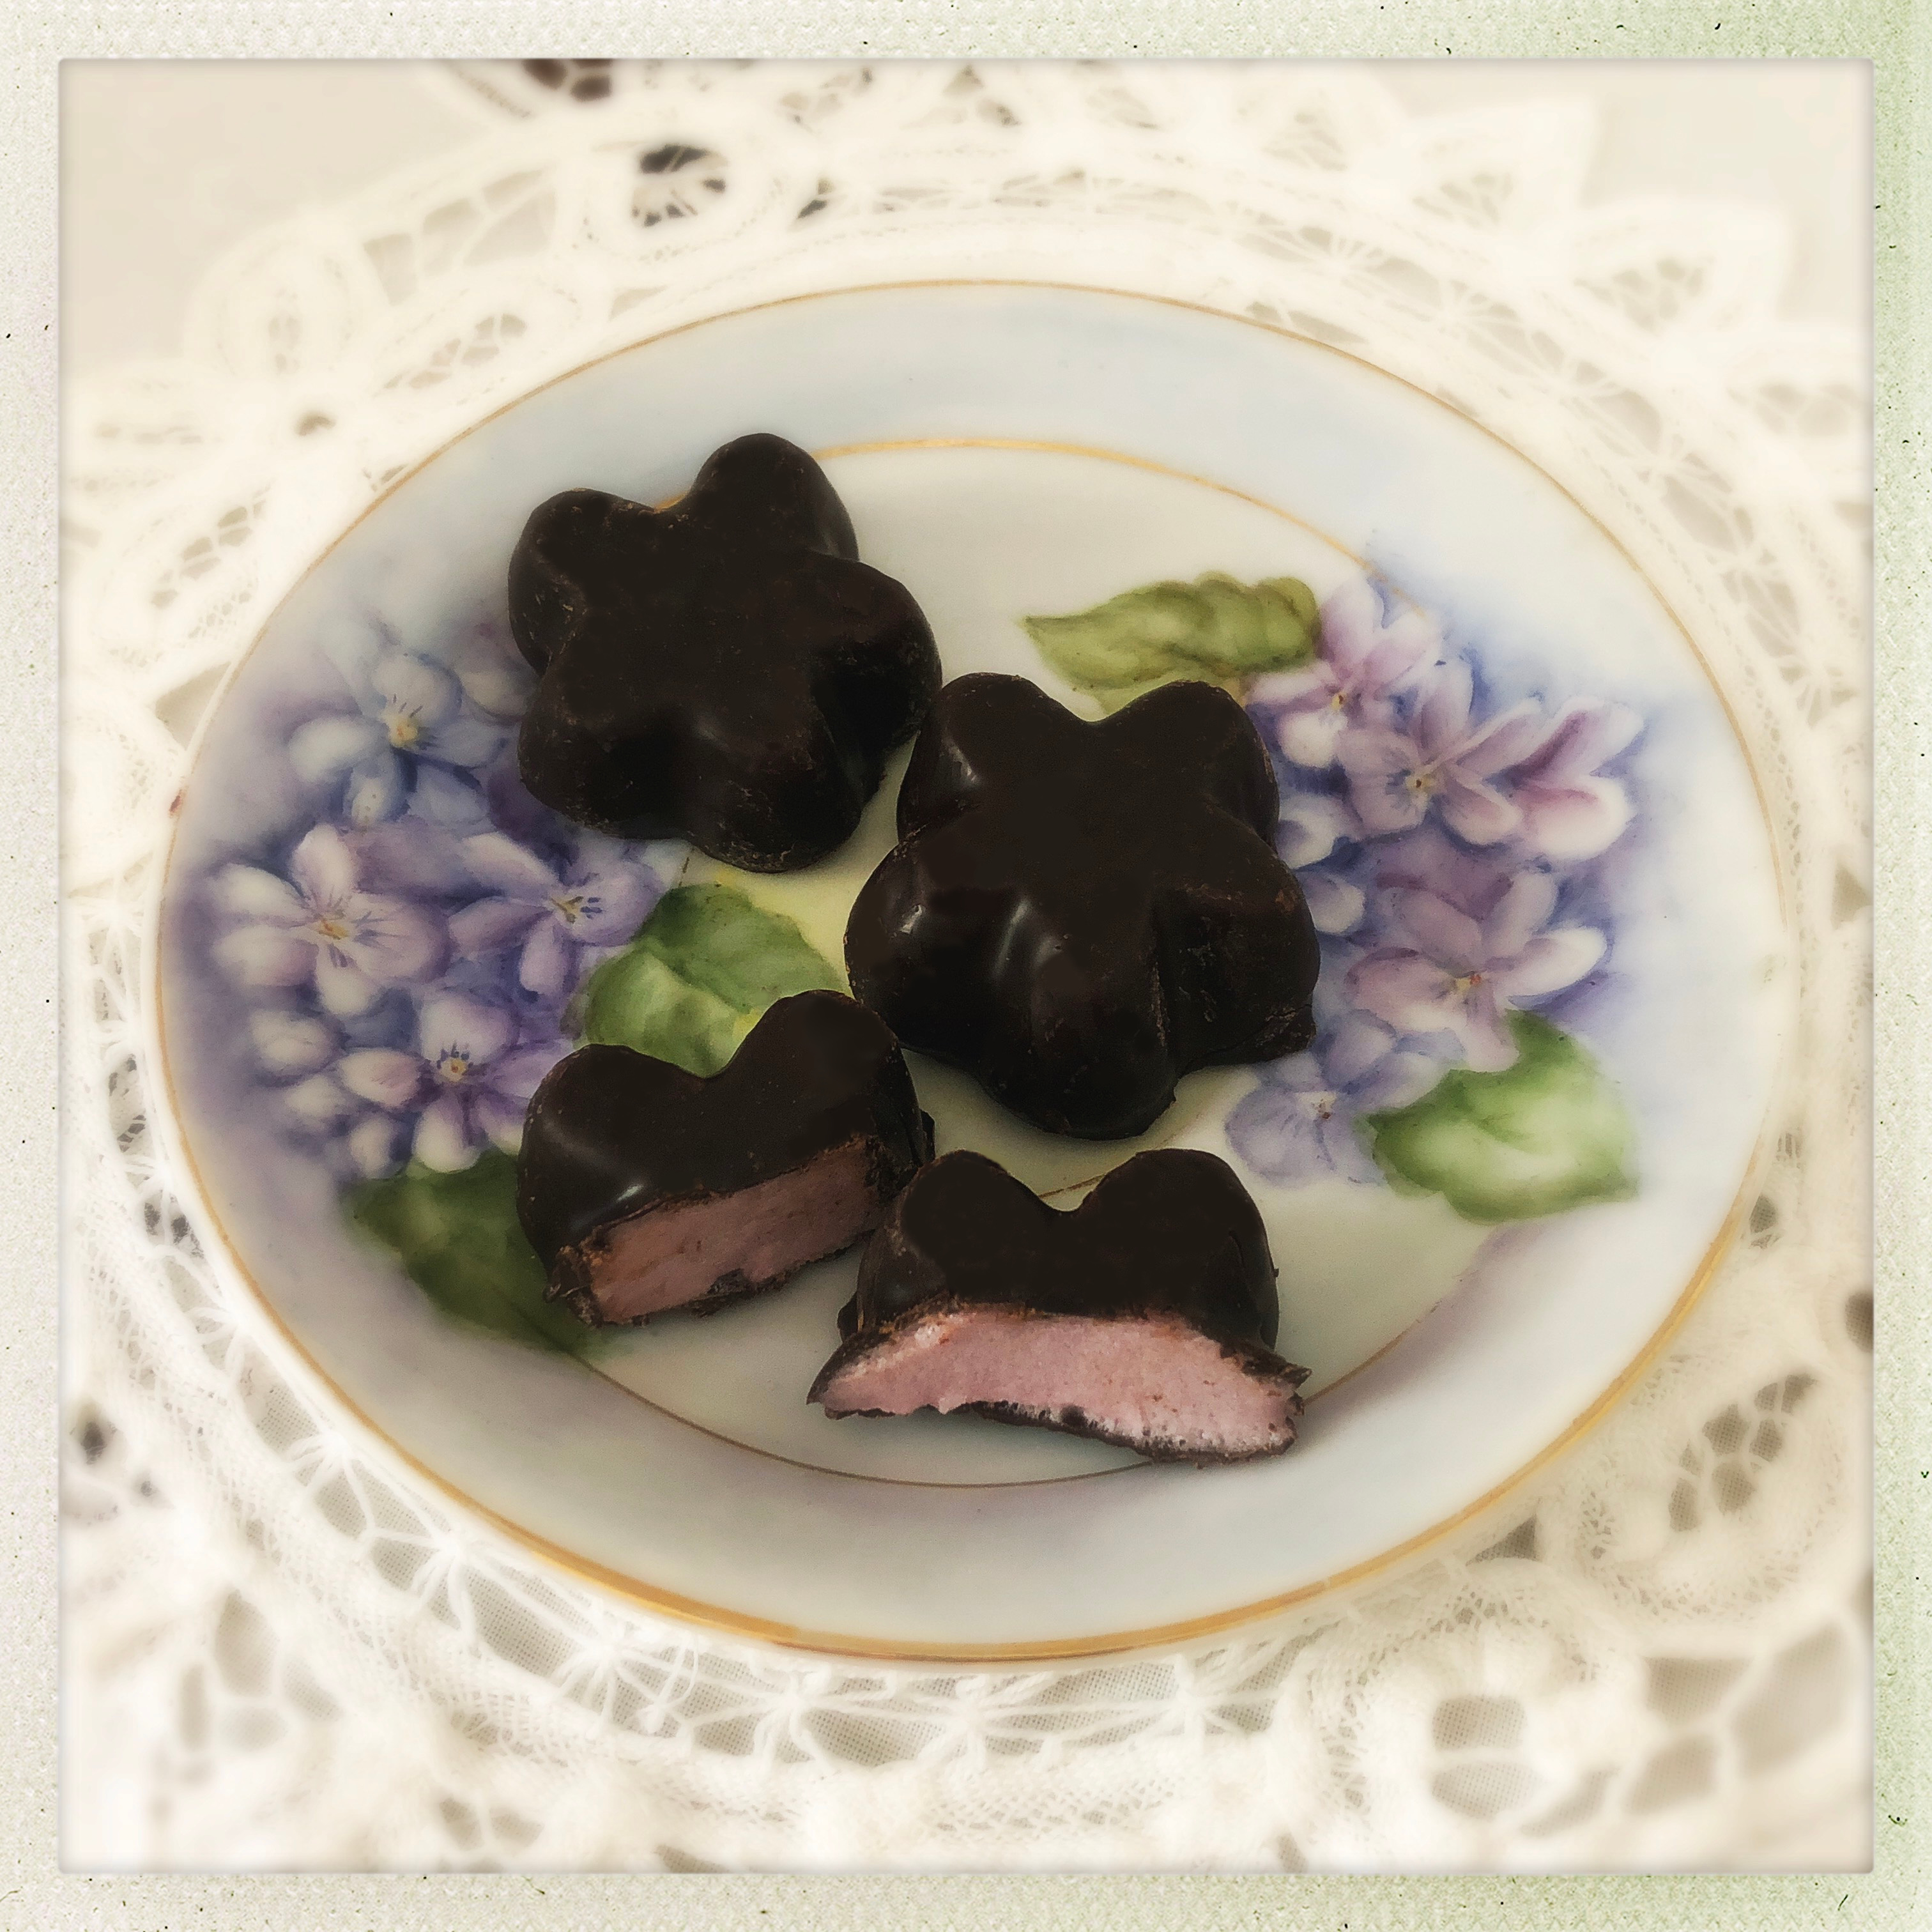 Cuisine Mauve These Violet Delights The Swoon Society